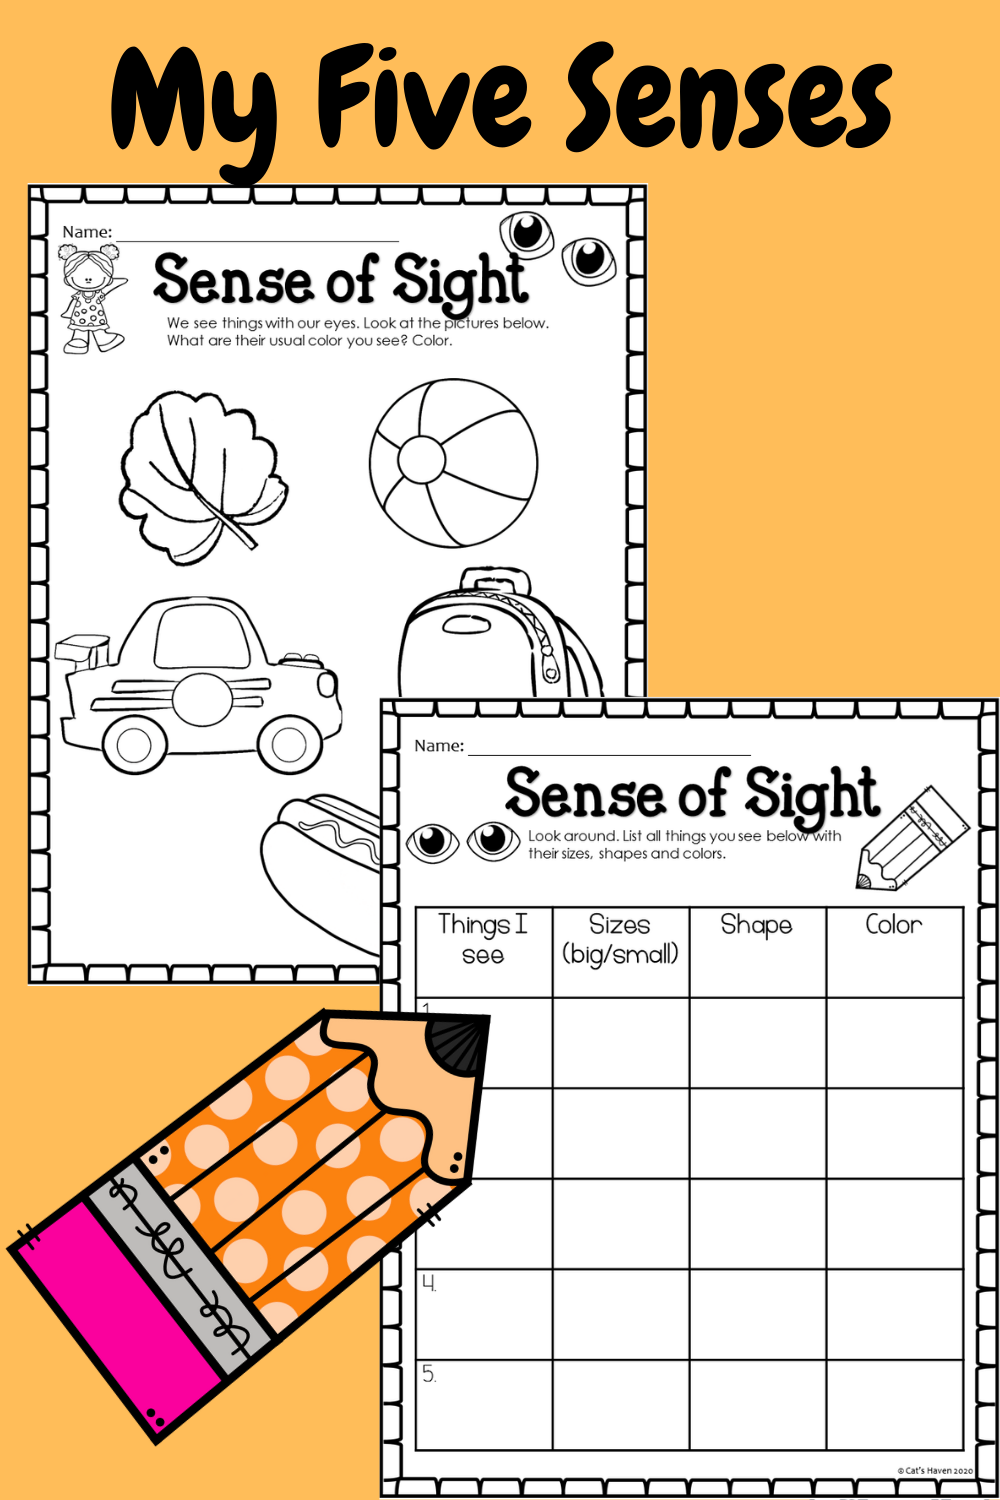 My Five Senses Flash Cards And Worksheets My Five Senses Five Senses Worksheet Fun Worksheets [ 1500 x 1000 Pixel ]